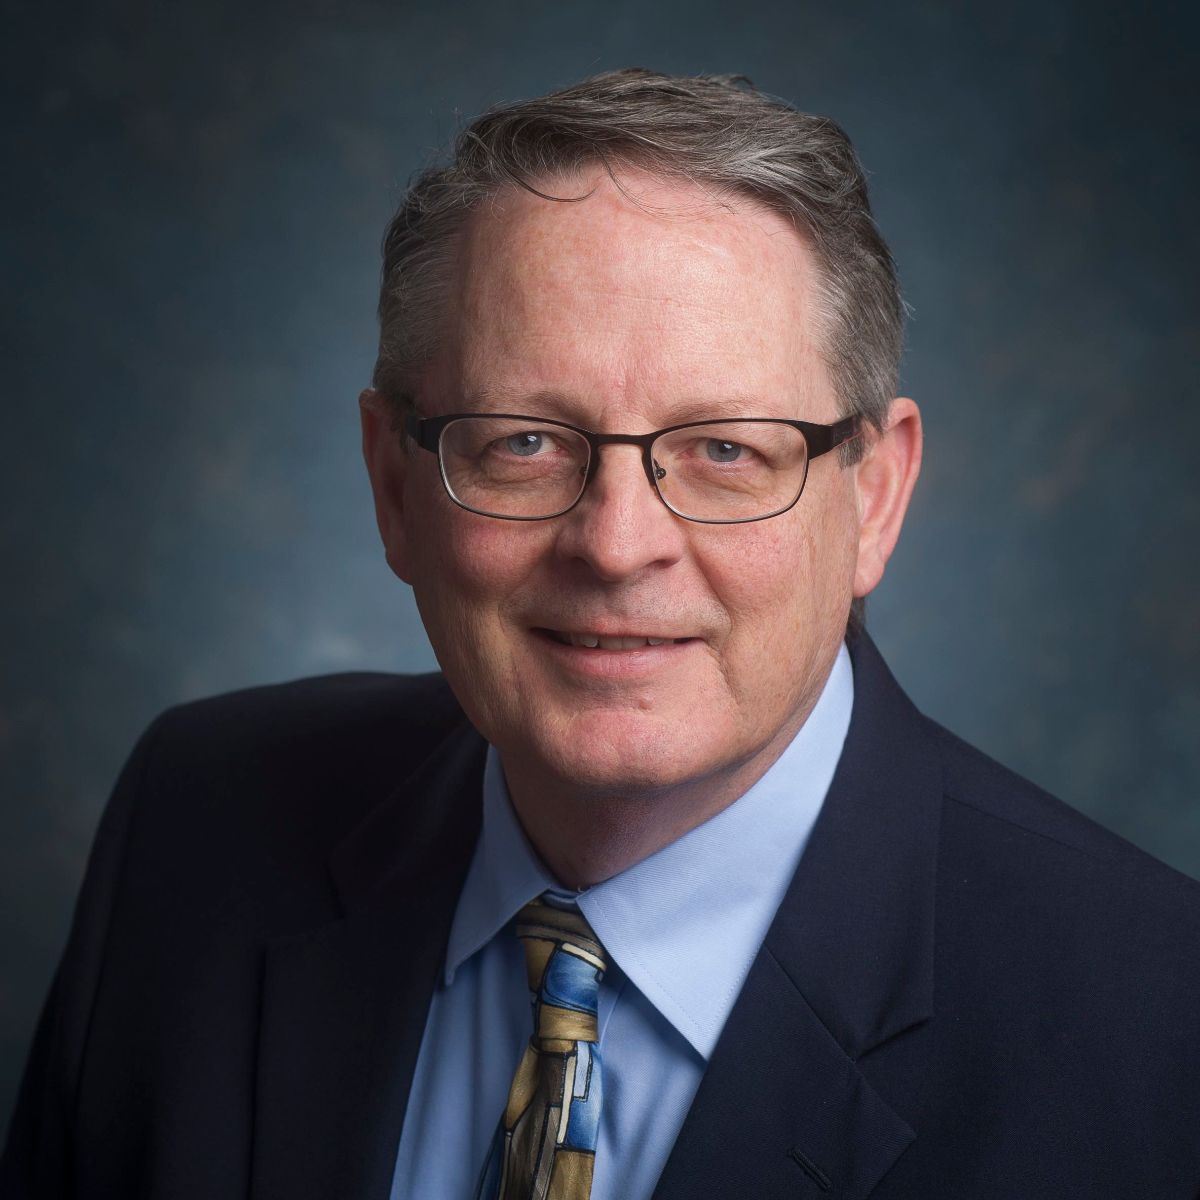 The journal Hypertension recognized Diurnal Control of Blood Pressure is Uncoupled from Sodium Excretion as a High Impact Paper for Summer 2020. Congrats to senior author Dr. David Pollock &@UAB_NRTCcolleagues for this important contribution to science! fal.cn/393TP